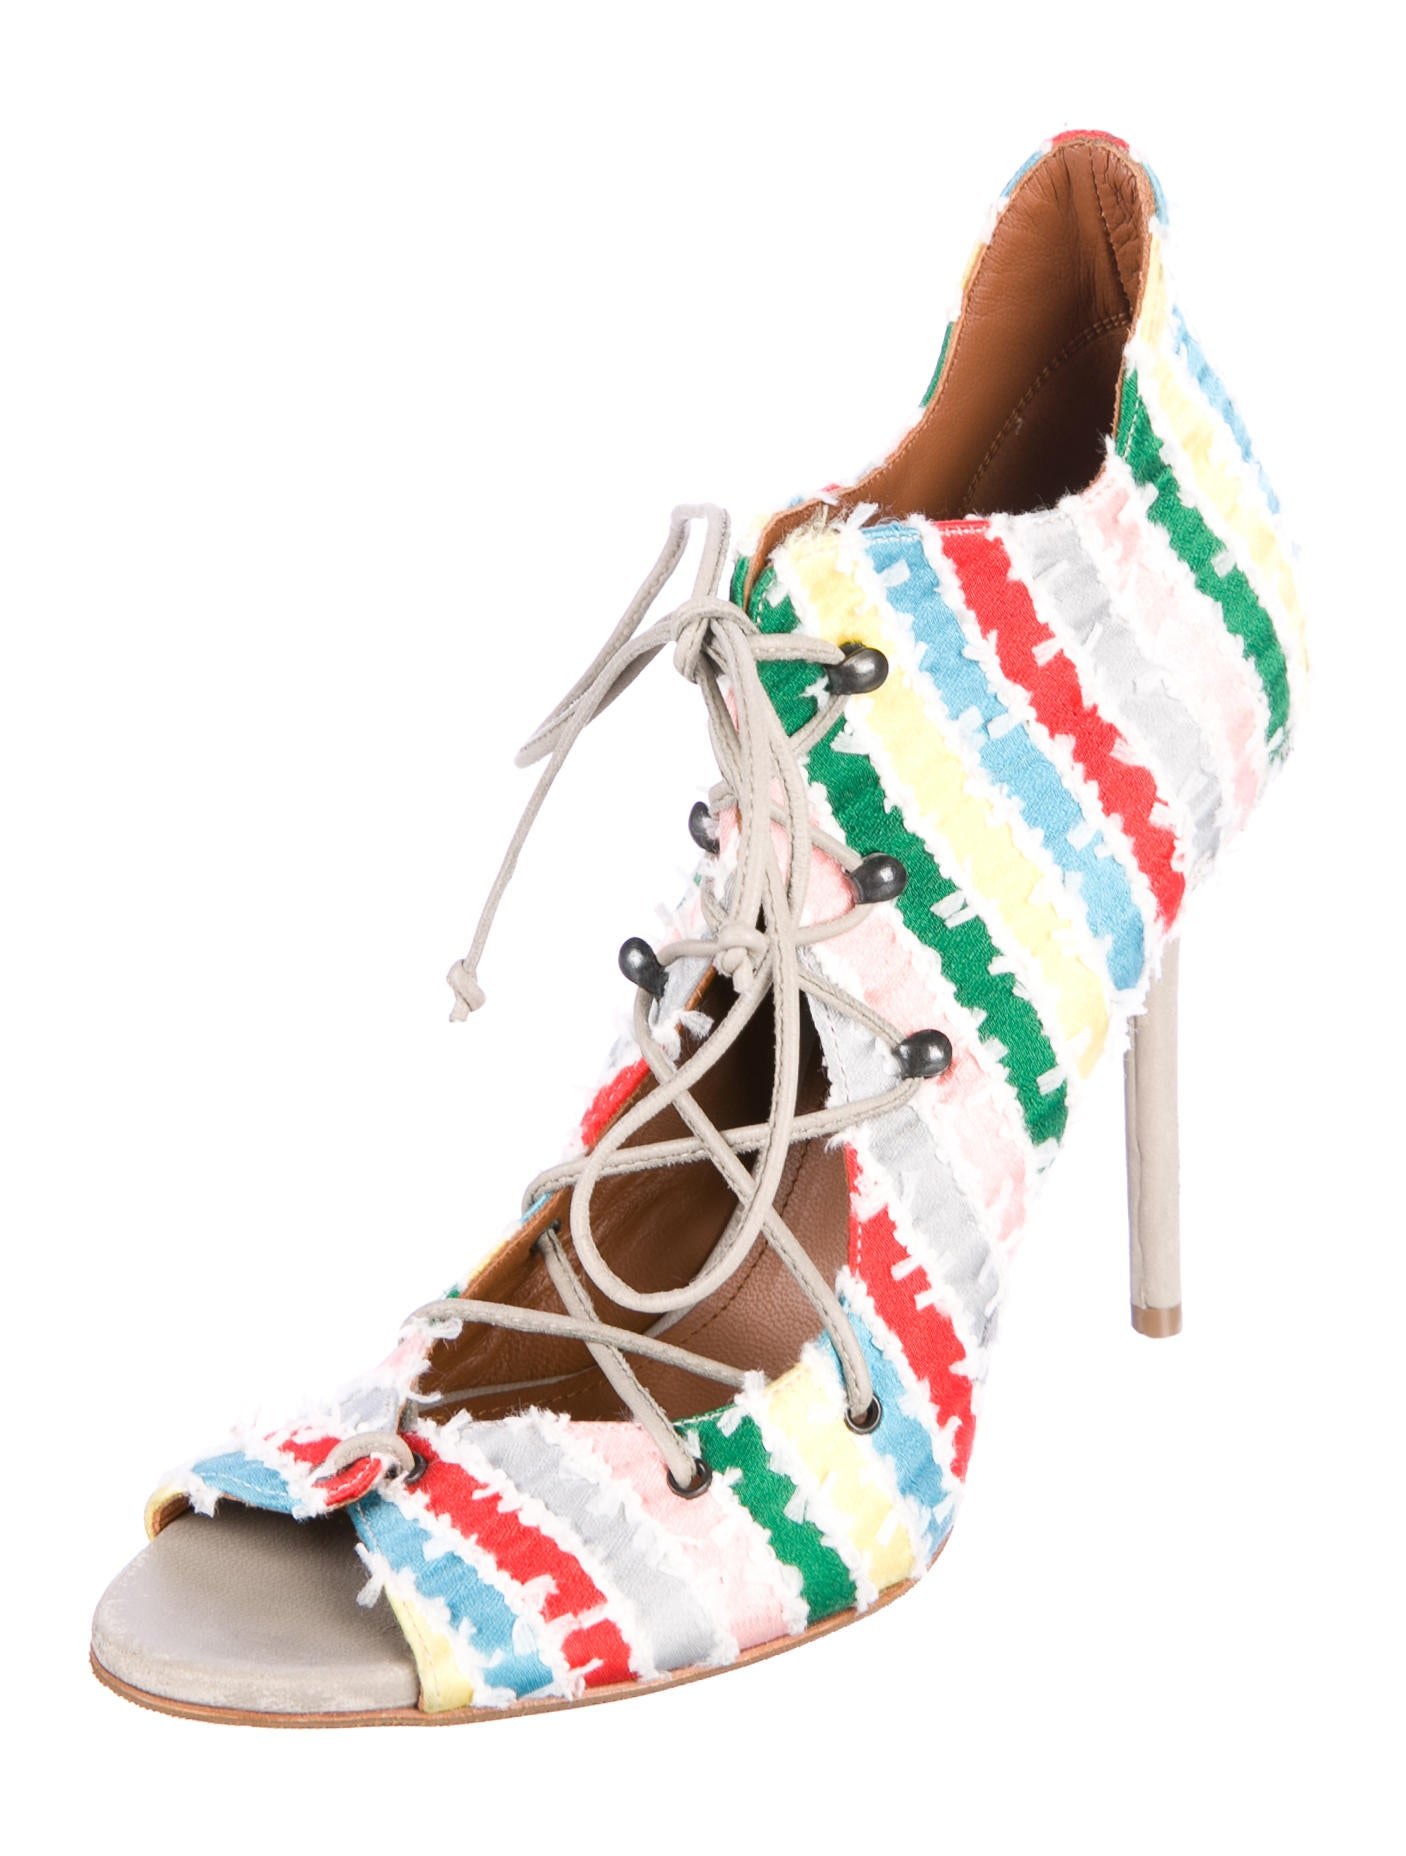 Malone Souliers Satin Caged Sandals best store to get cheap online for sale cheap price clearance factory outlet 2015 for sale cheap sale exclusive nOqLyYJin